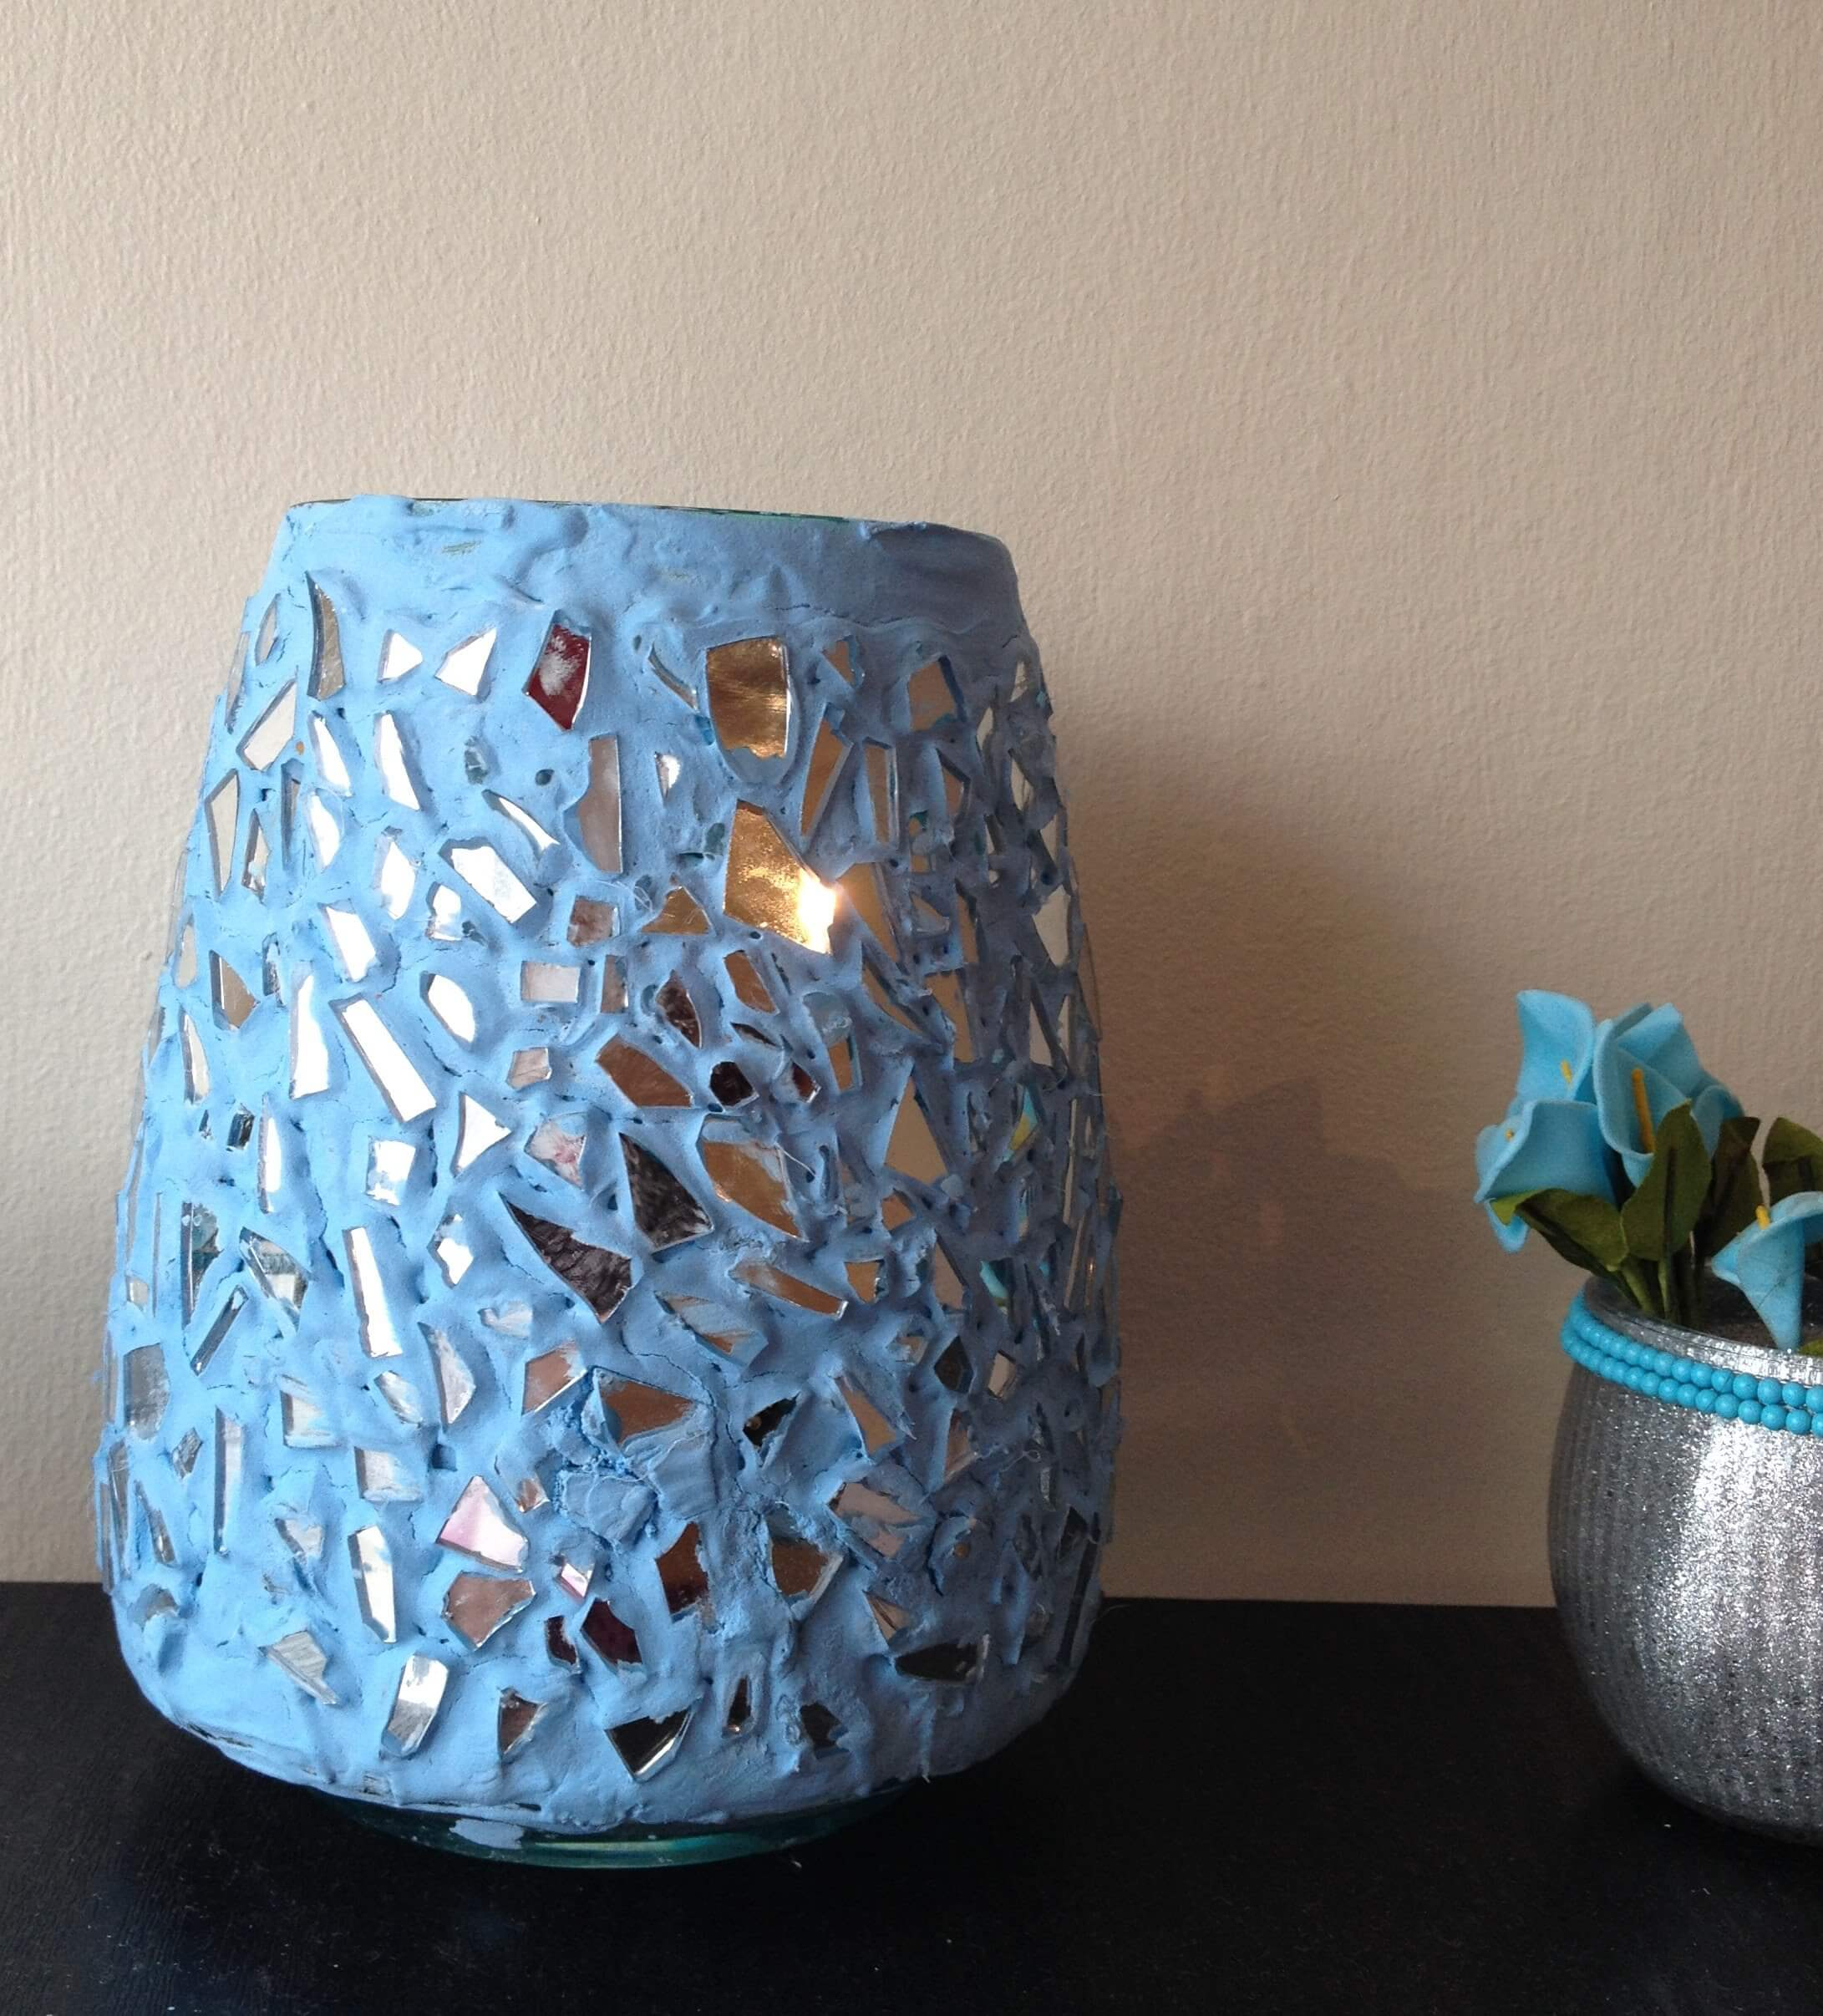 Mirror Glass on a Blue Vase